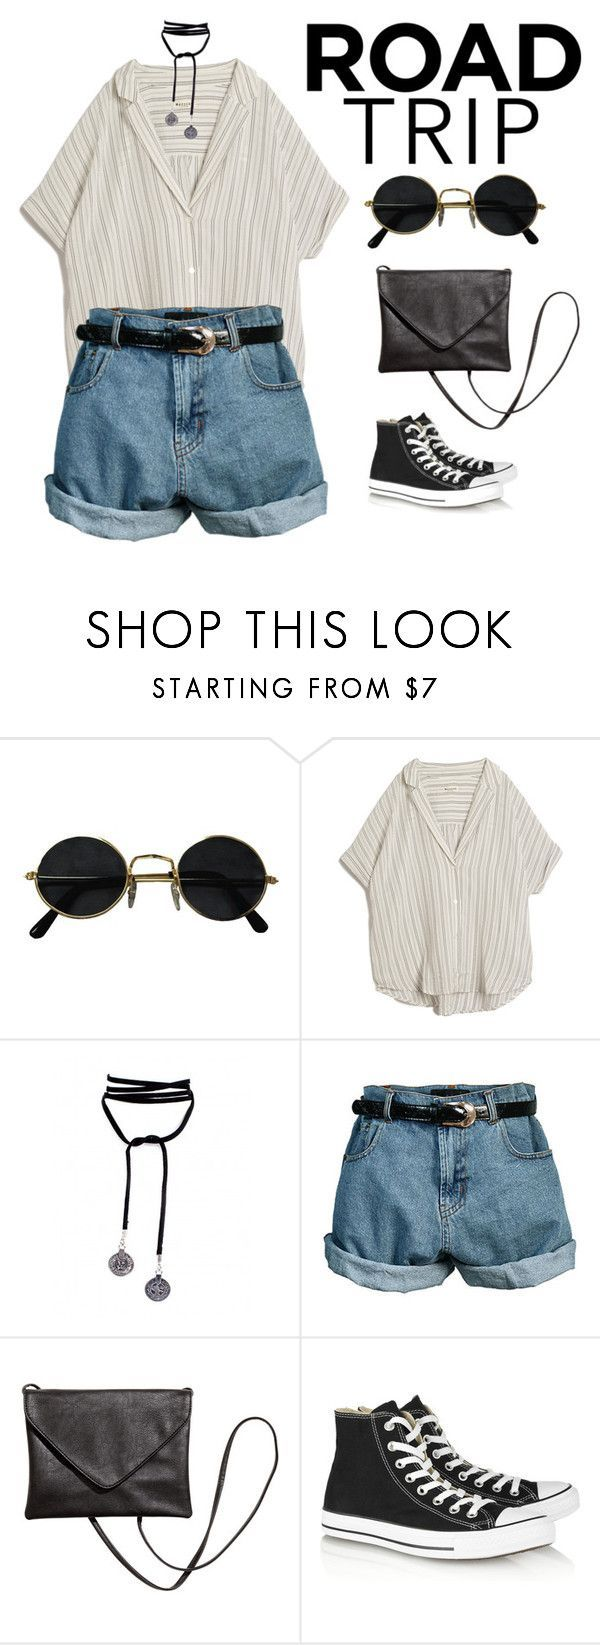 """""""road trippin"""" by aintnoloveydovey ❤ liked on Polyvore featuring MASSCOB, Lamoda, Retrò and Converse"""